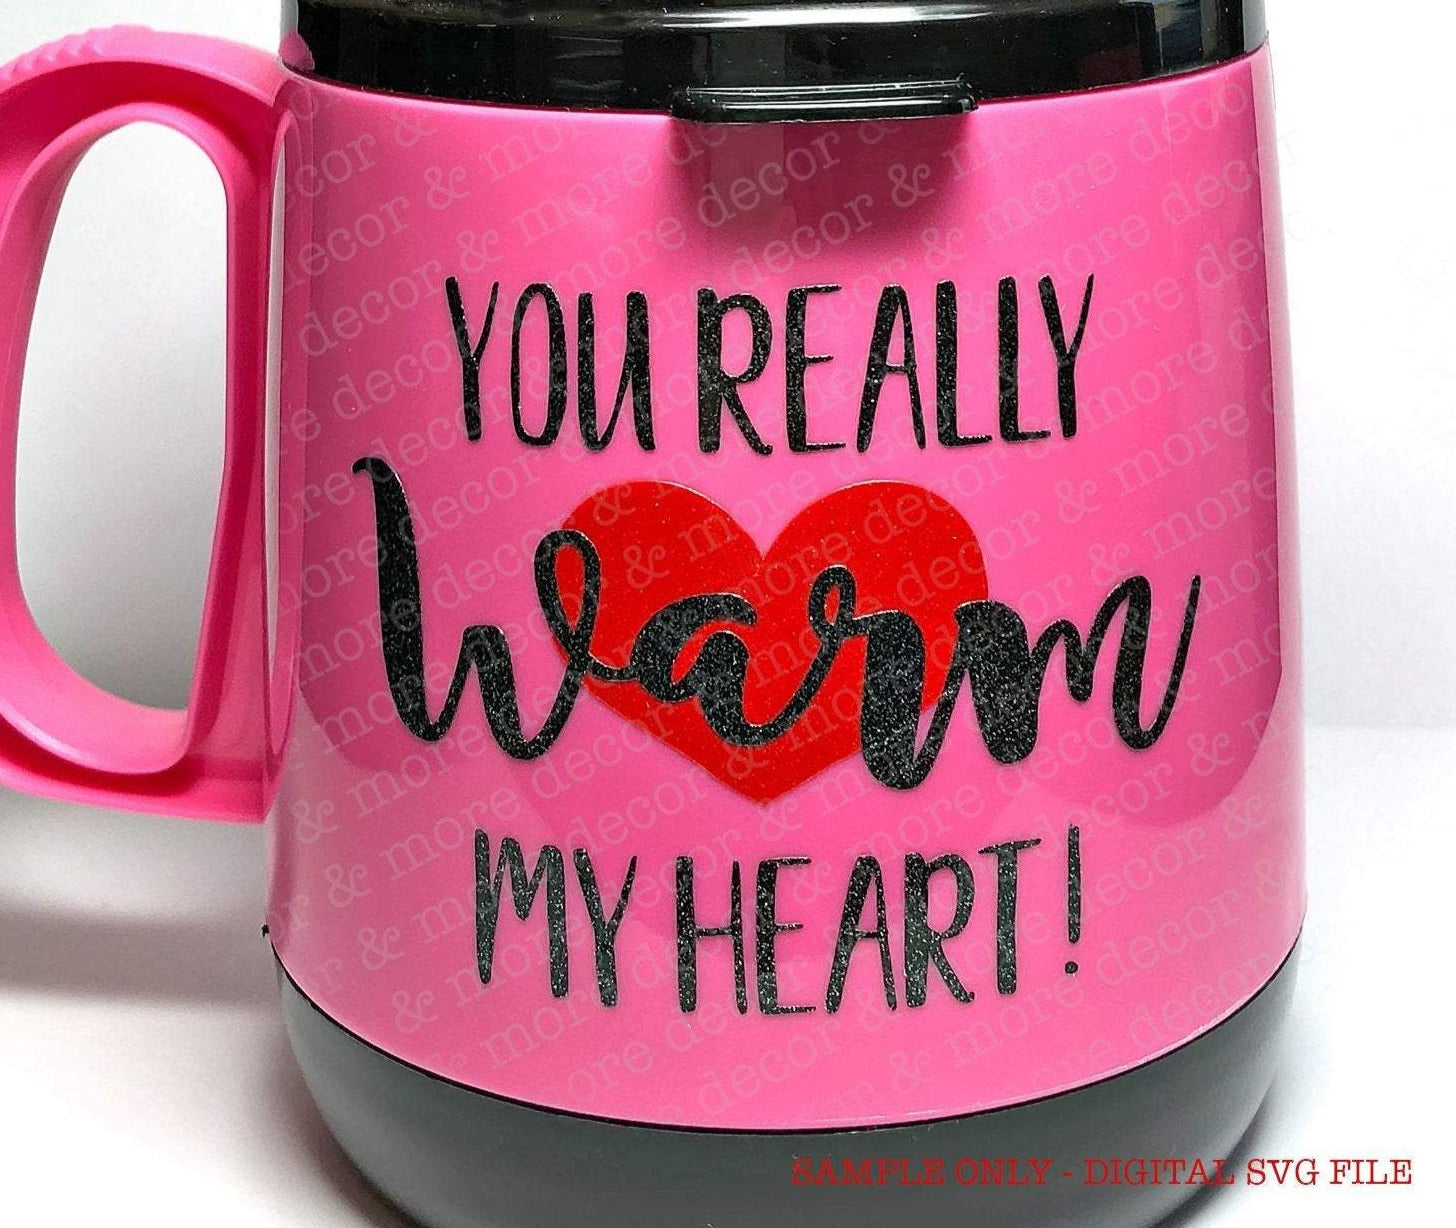 VALENTINE SVG FILE, Coffee Mug Valentine Saying SVG, Warm My Heart Valentine SVG File, Valentines Day SVG